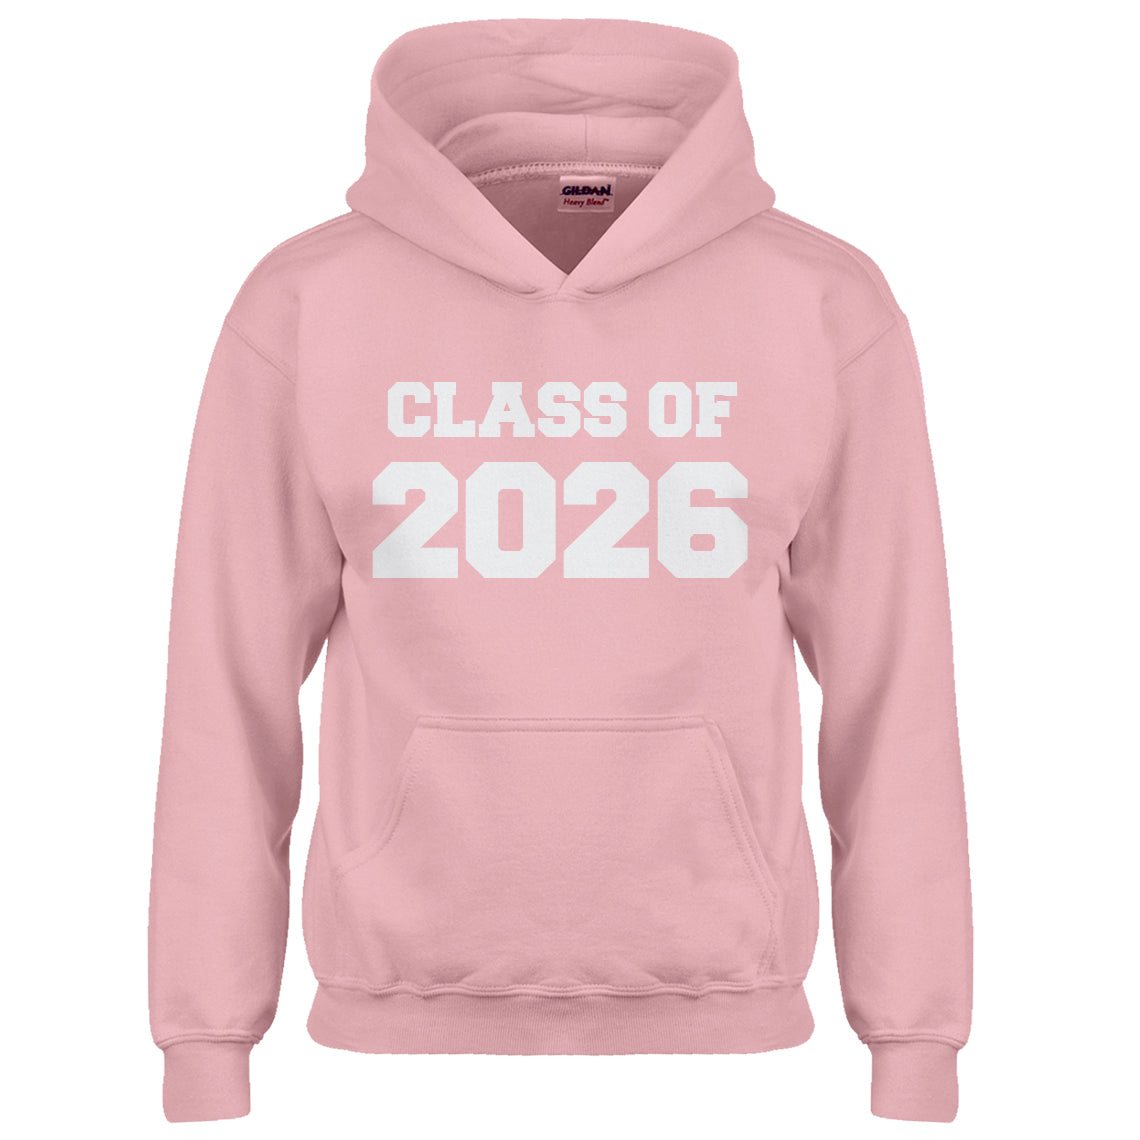 Indica Plateau Class of 2026 Hoodie for Kids